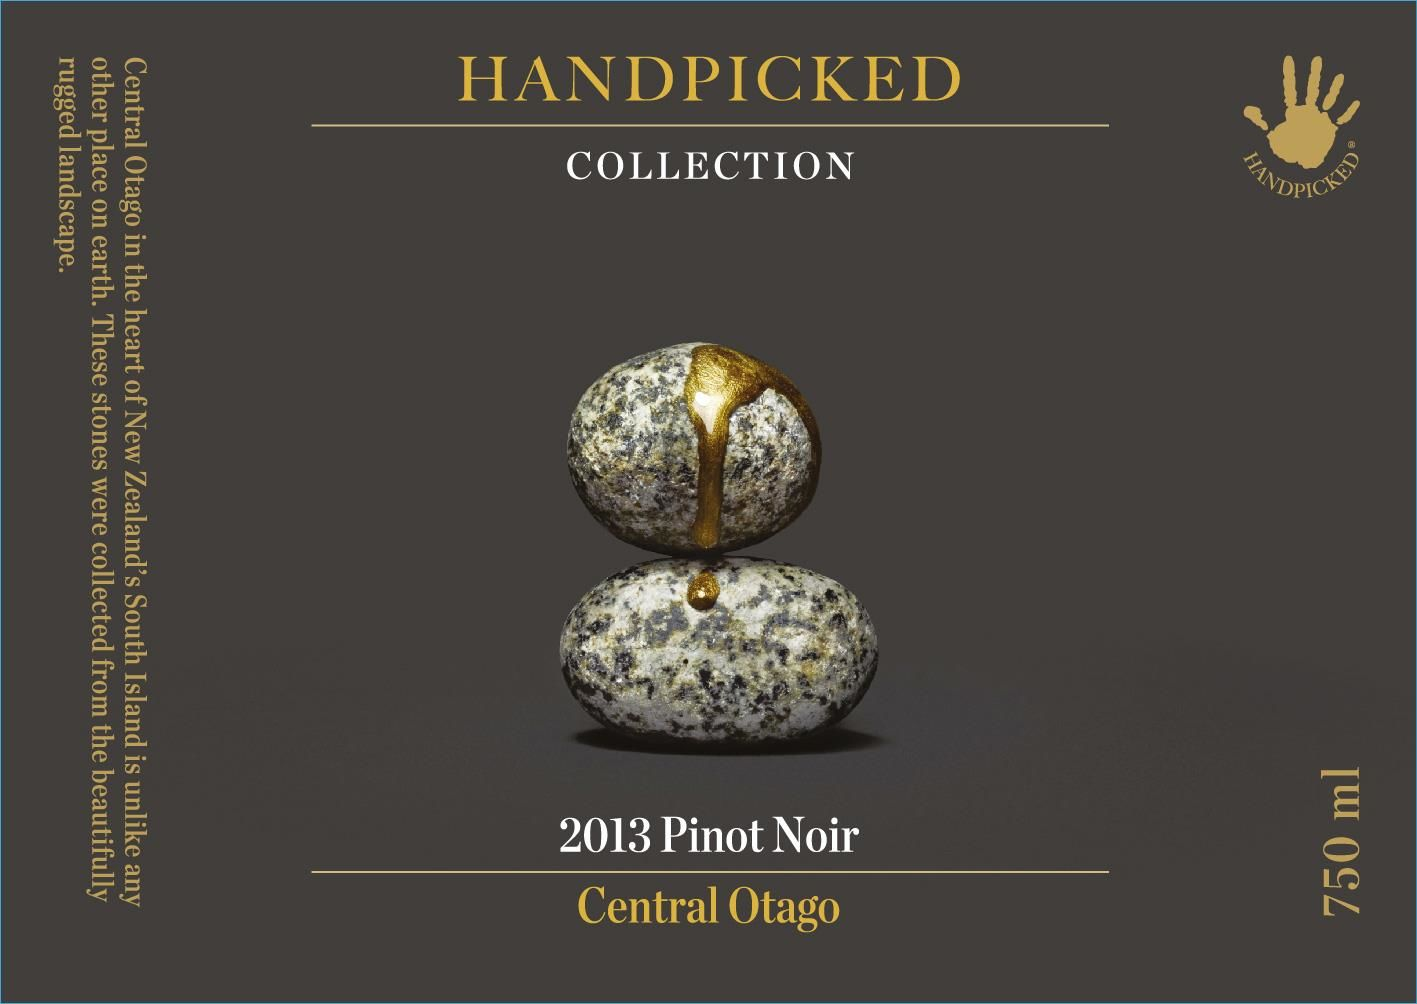 Handpicked Wines Collection Central Otago Pinot Noir 2013 Front Label